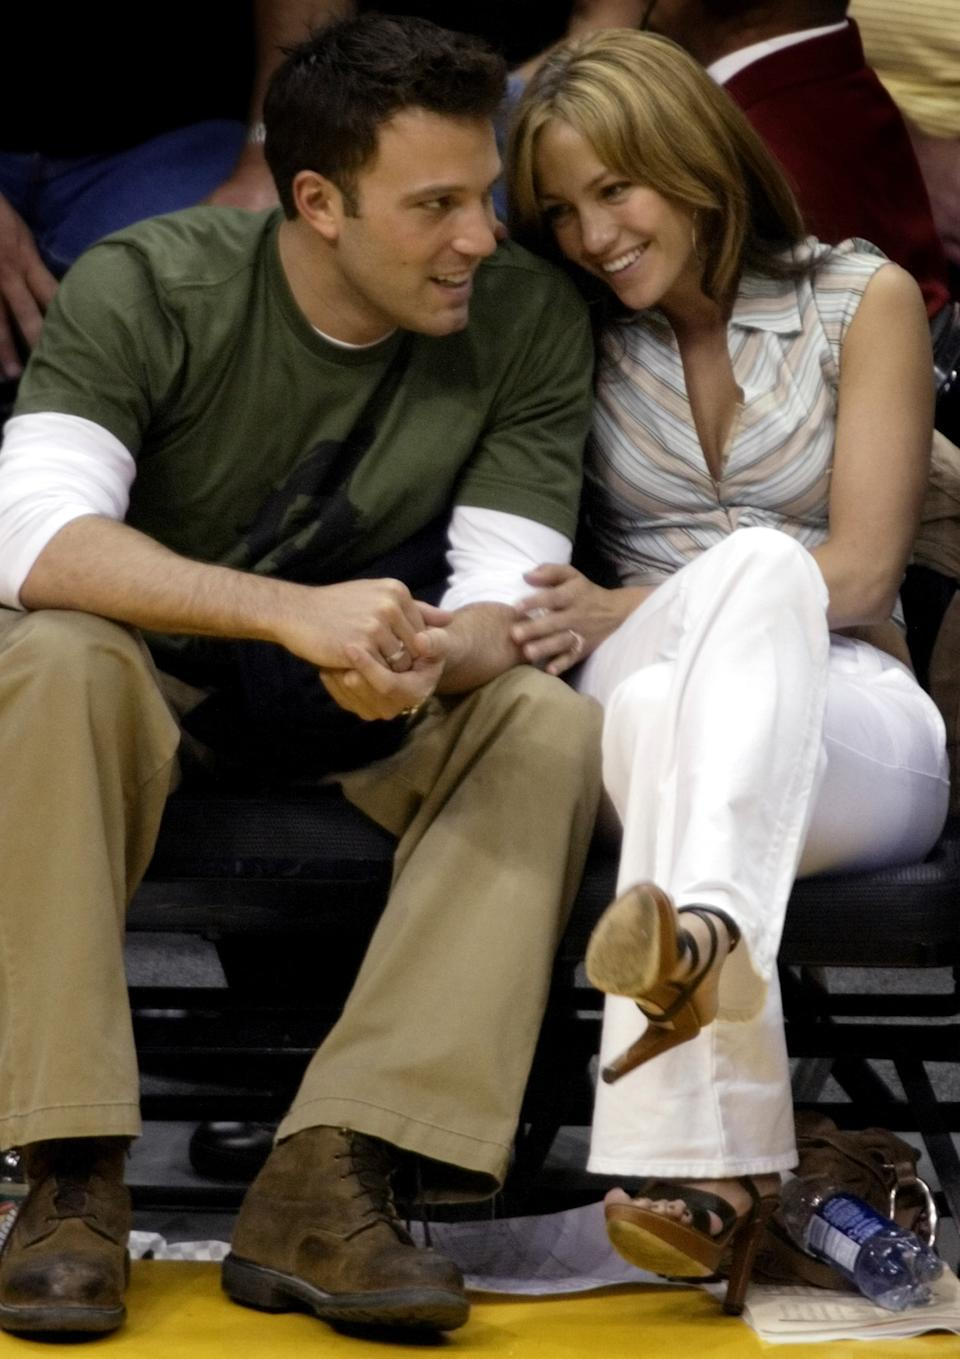 """<p>""""She is really enamored with him. [Her foot] is in his direction, he's leaning in towards her but she really adores him, learning in, grabbing."""" - Dr. Lillian Glass, body language expert (REUTERS/Mike Blake)</p>"""